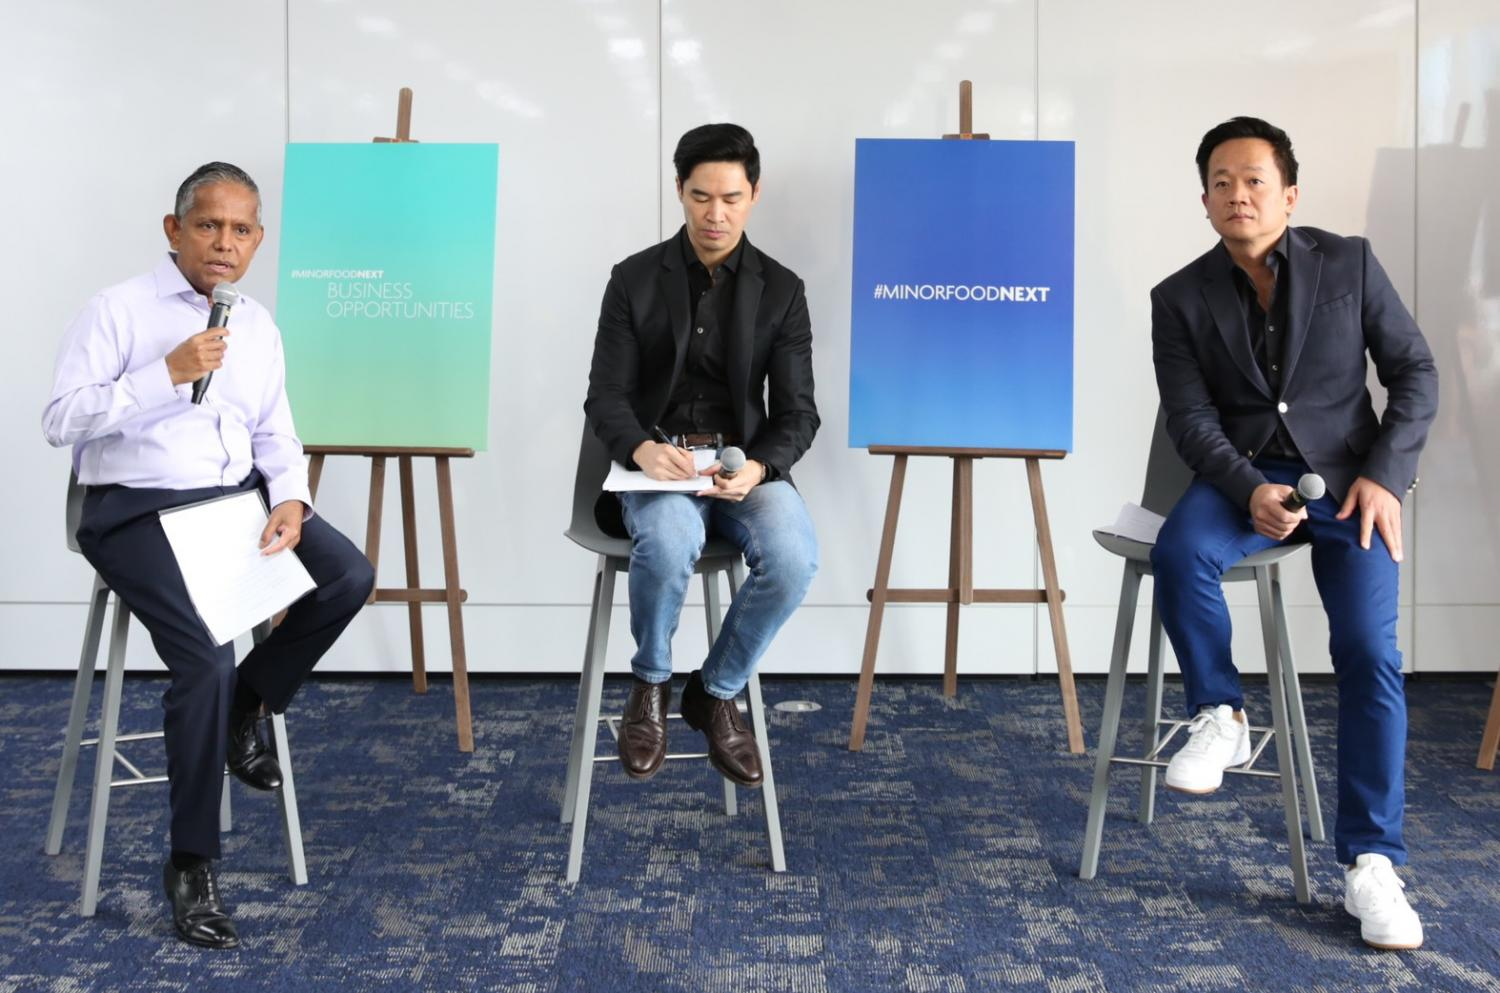 Dillip Rajakarier (left), Chaiyapat Paitoon (centre) and Prapat Siangchan announce their 2020 strategy at Minor Food Group's press conference.